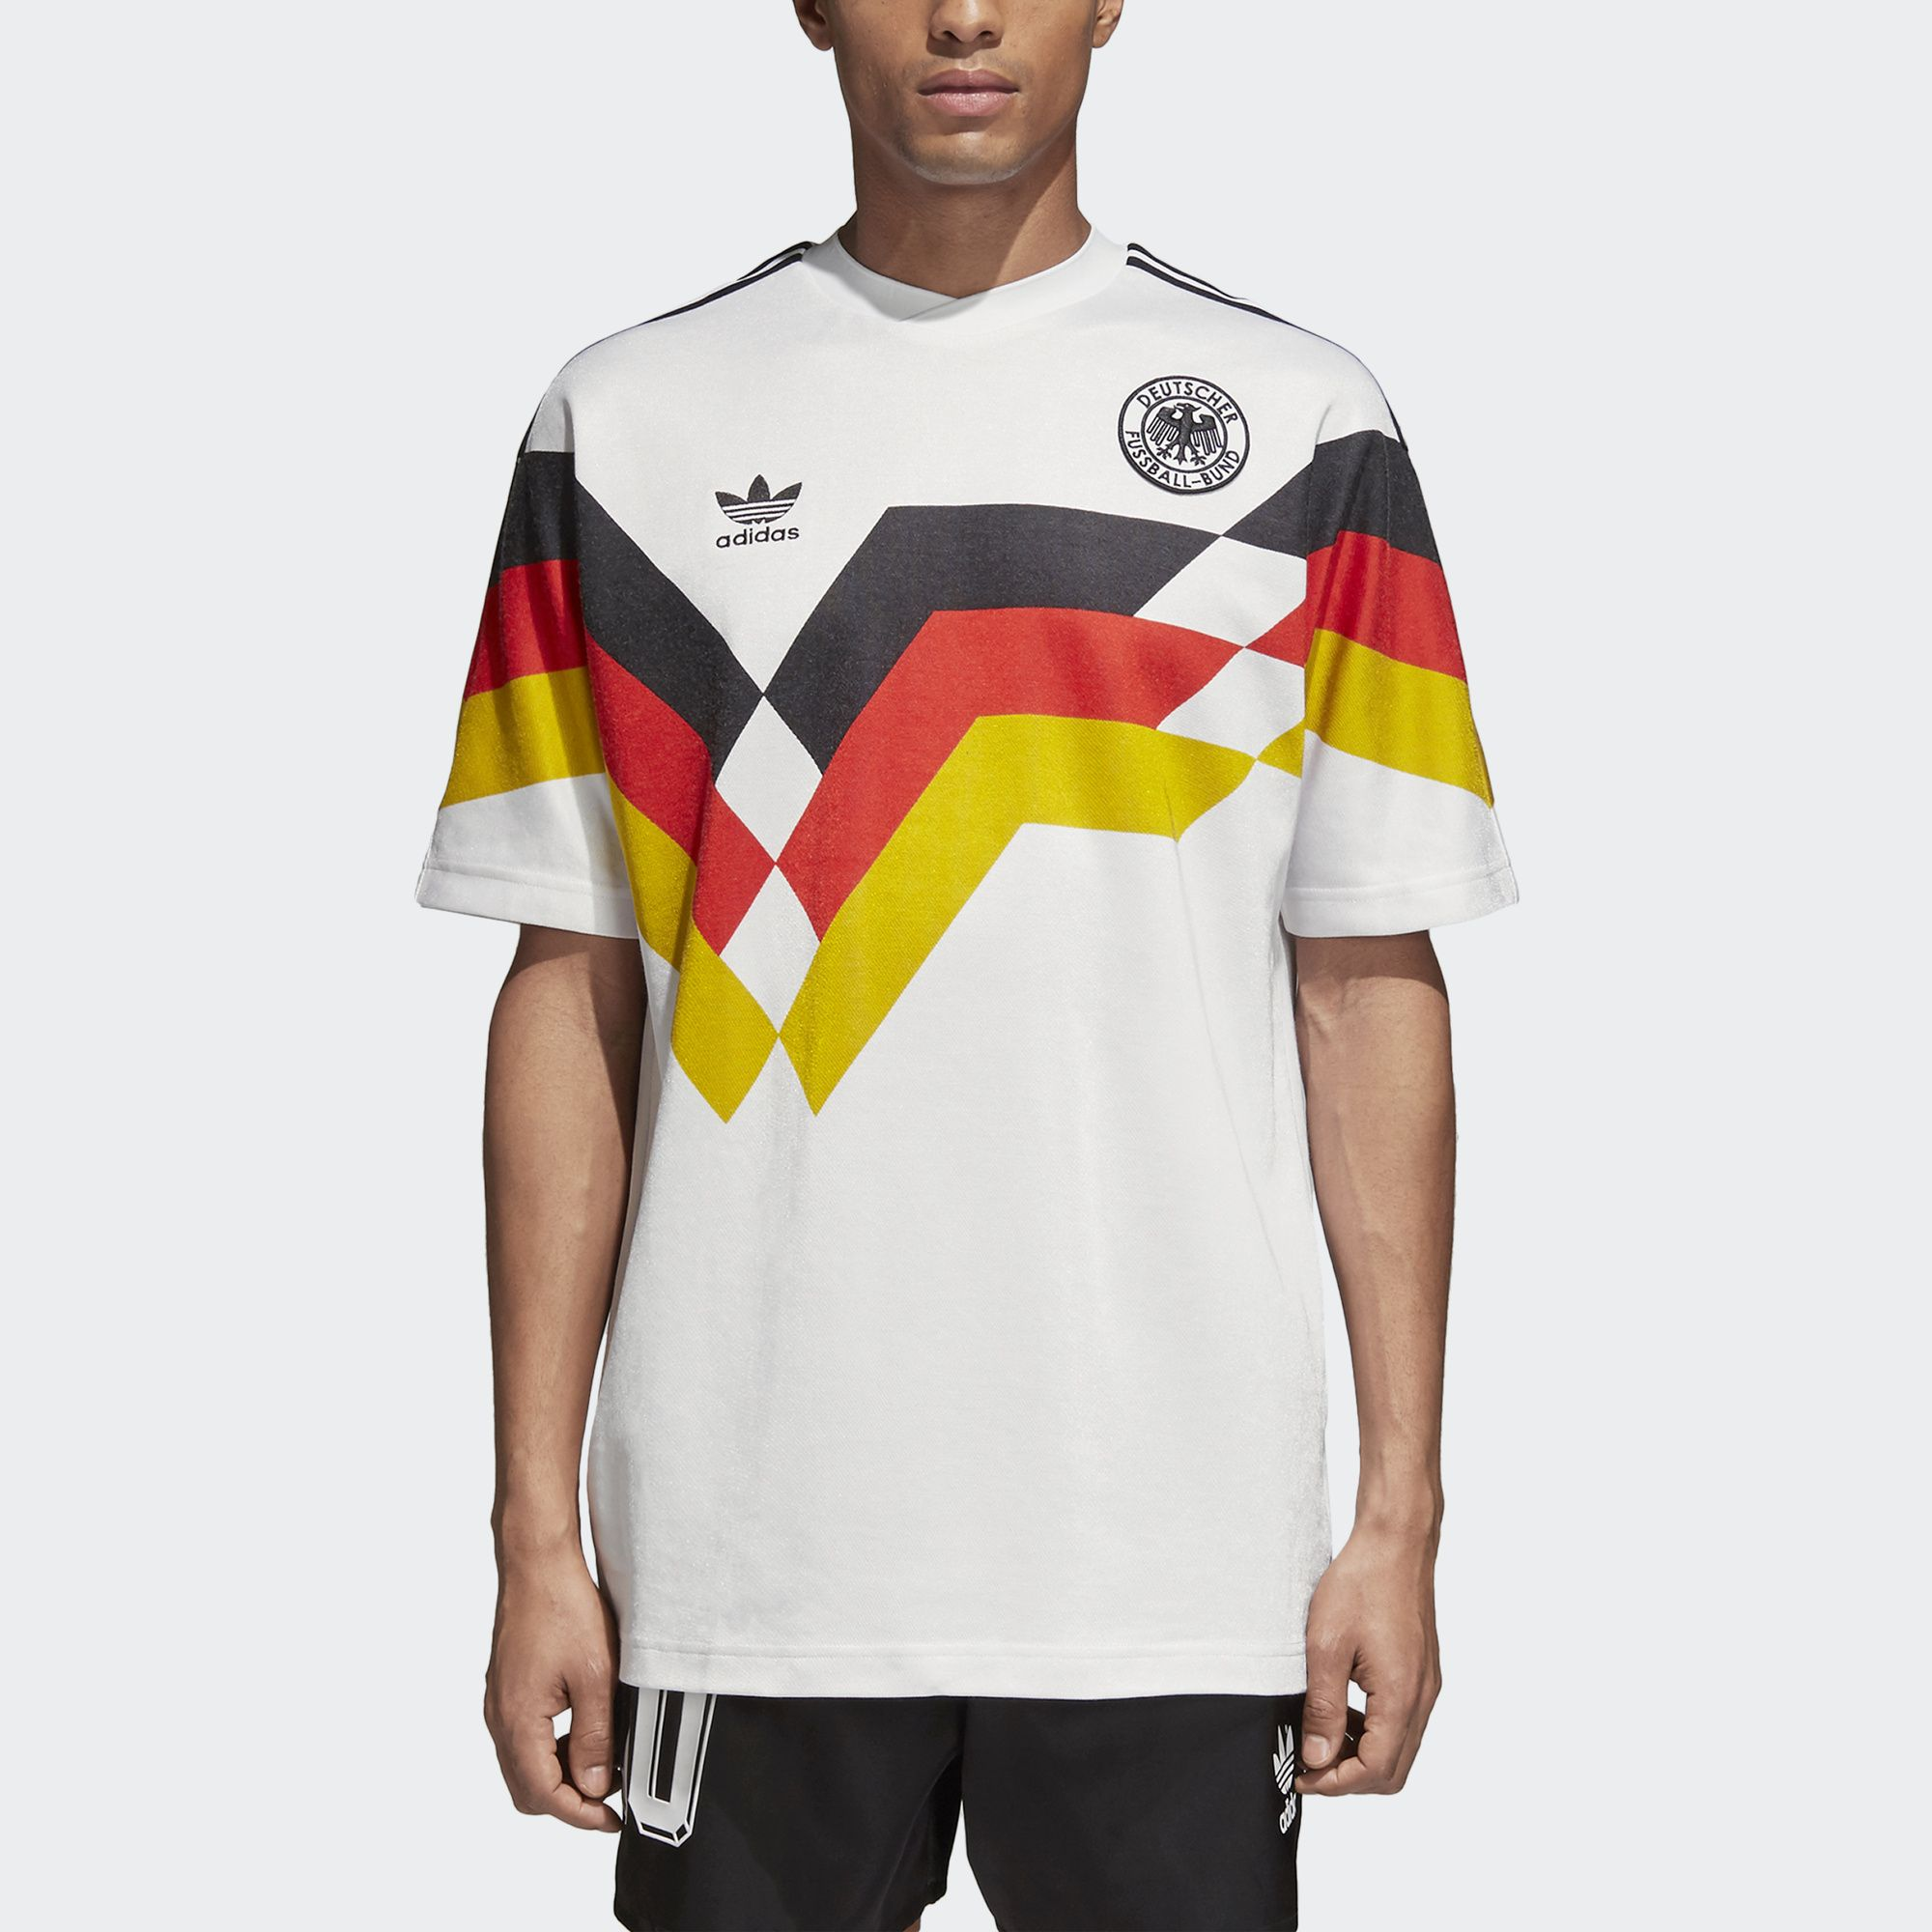 Millas botella congestión  Shop the Germany Jersey - White at adidas.com/us! See all the styles and  colors of Germany Jersey - White at the offi… | World cup jerseys, Adidas  men, Mens tshirts